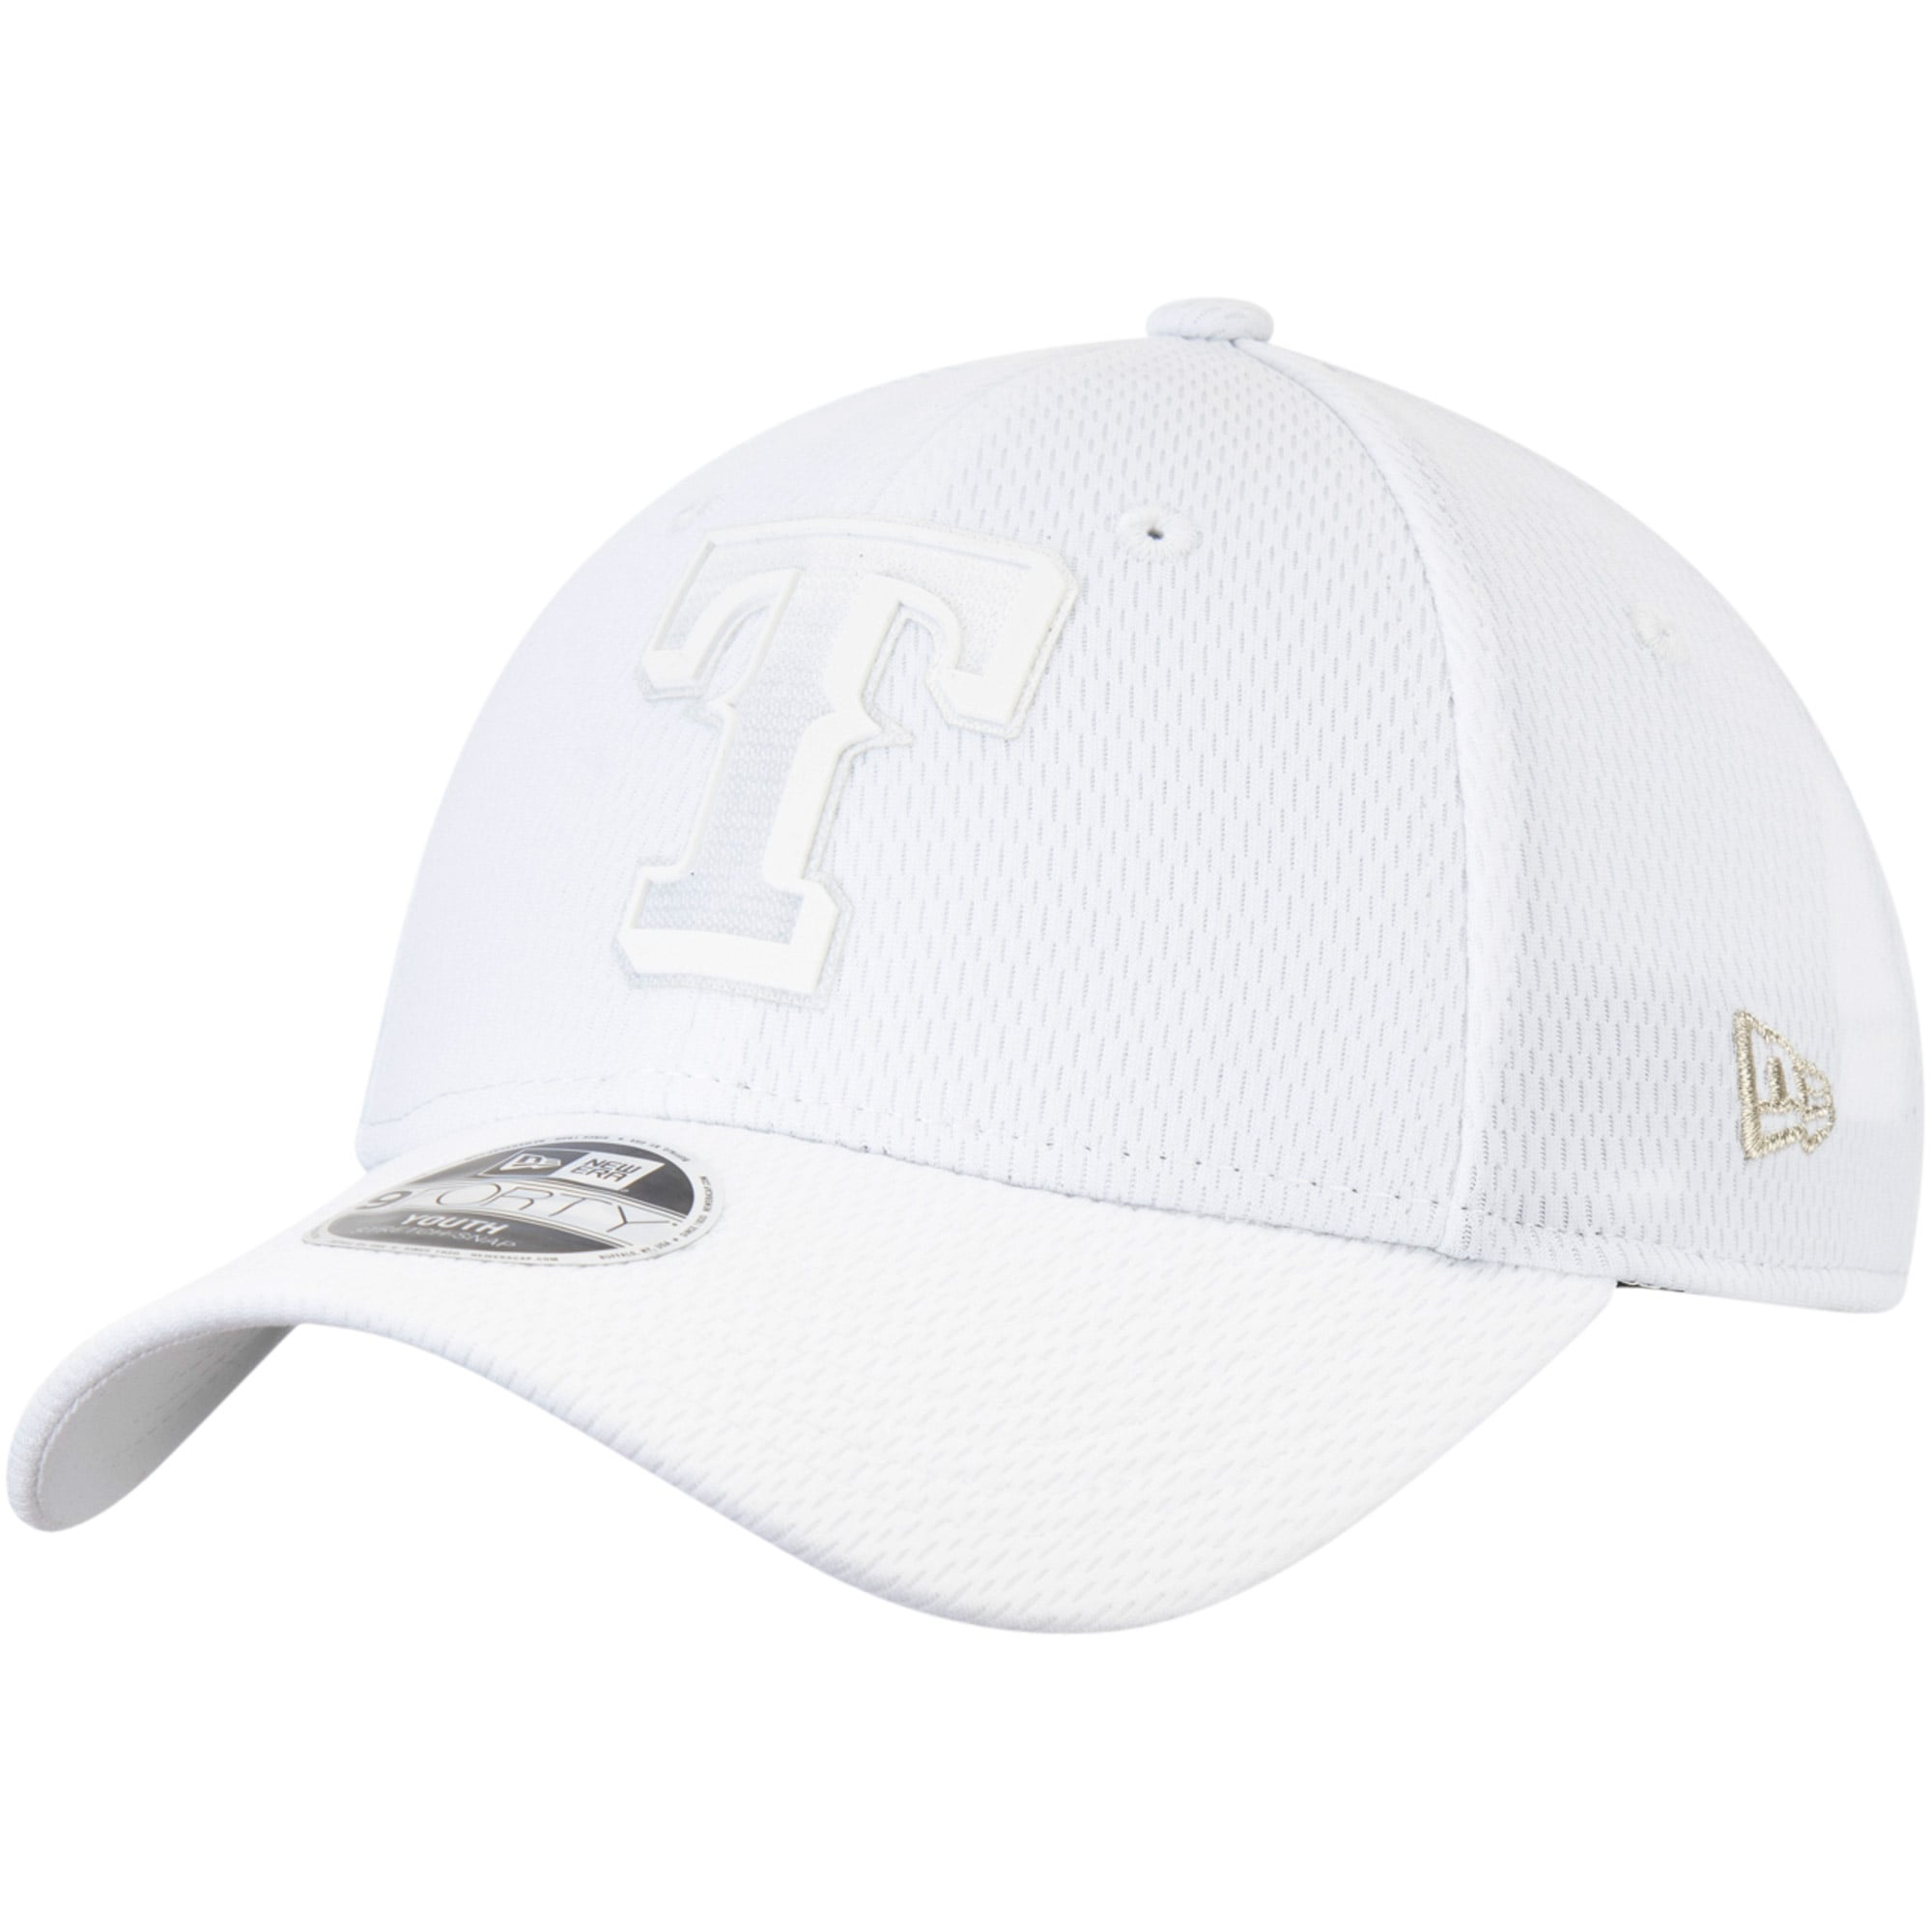 Texas Rangers New Era Youth 2019 Players' Weekend 9FORTY Adjustable Hat - White